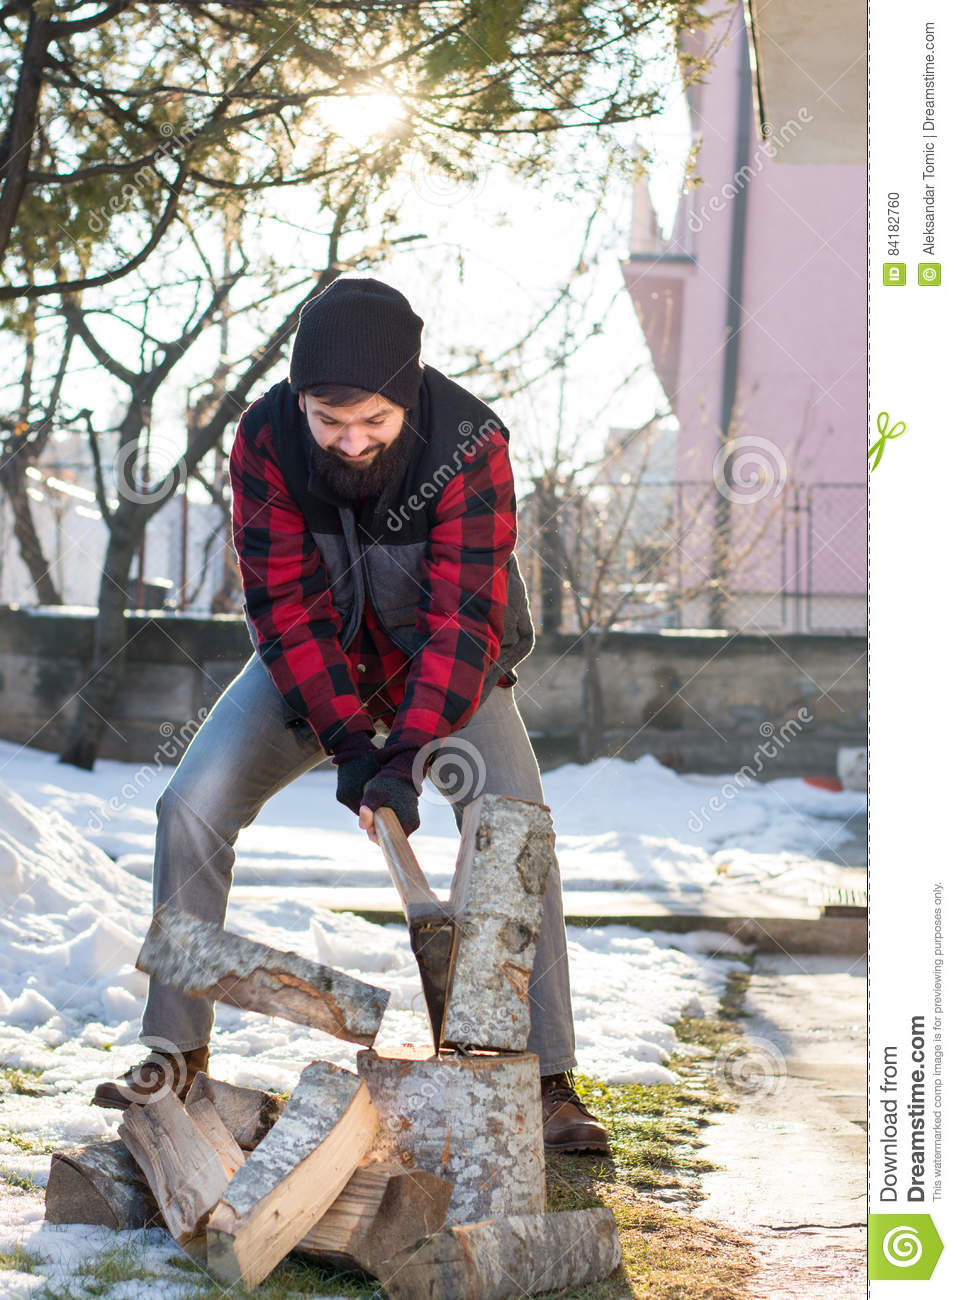 Man Chopping Firewood In The Yard Stock Photo - Image of ...